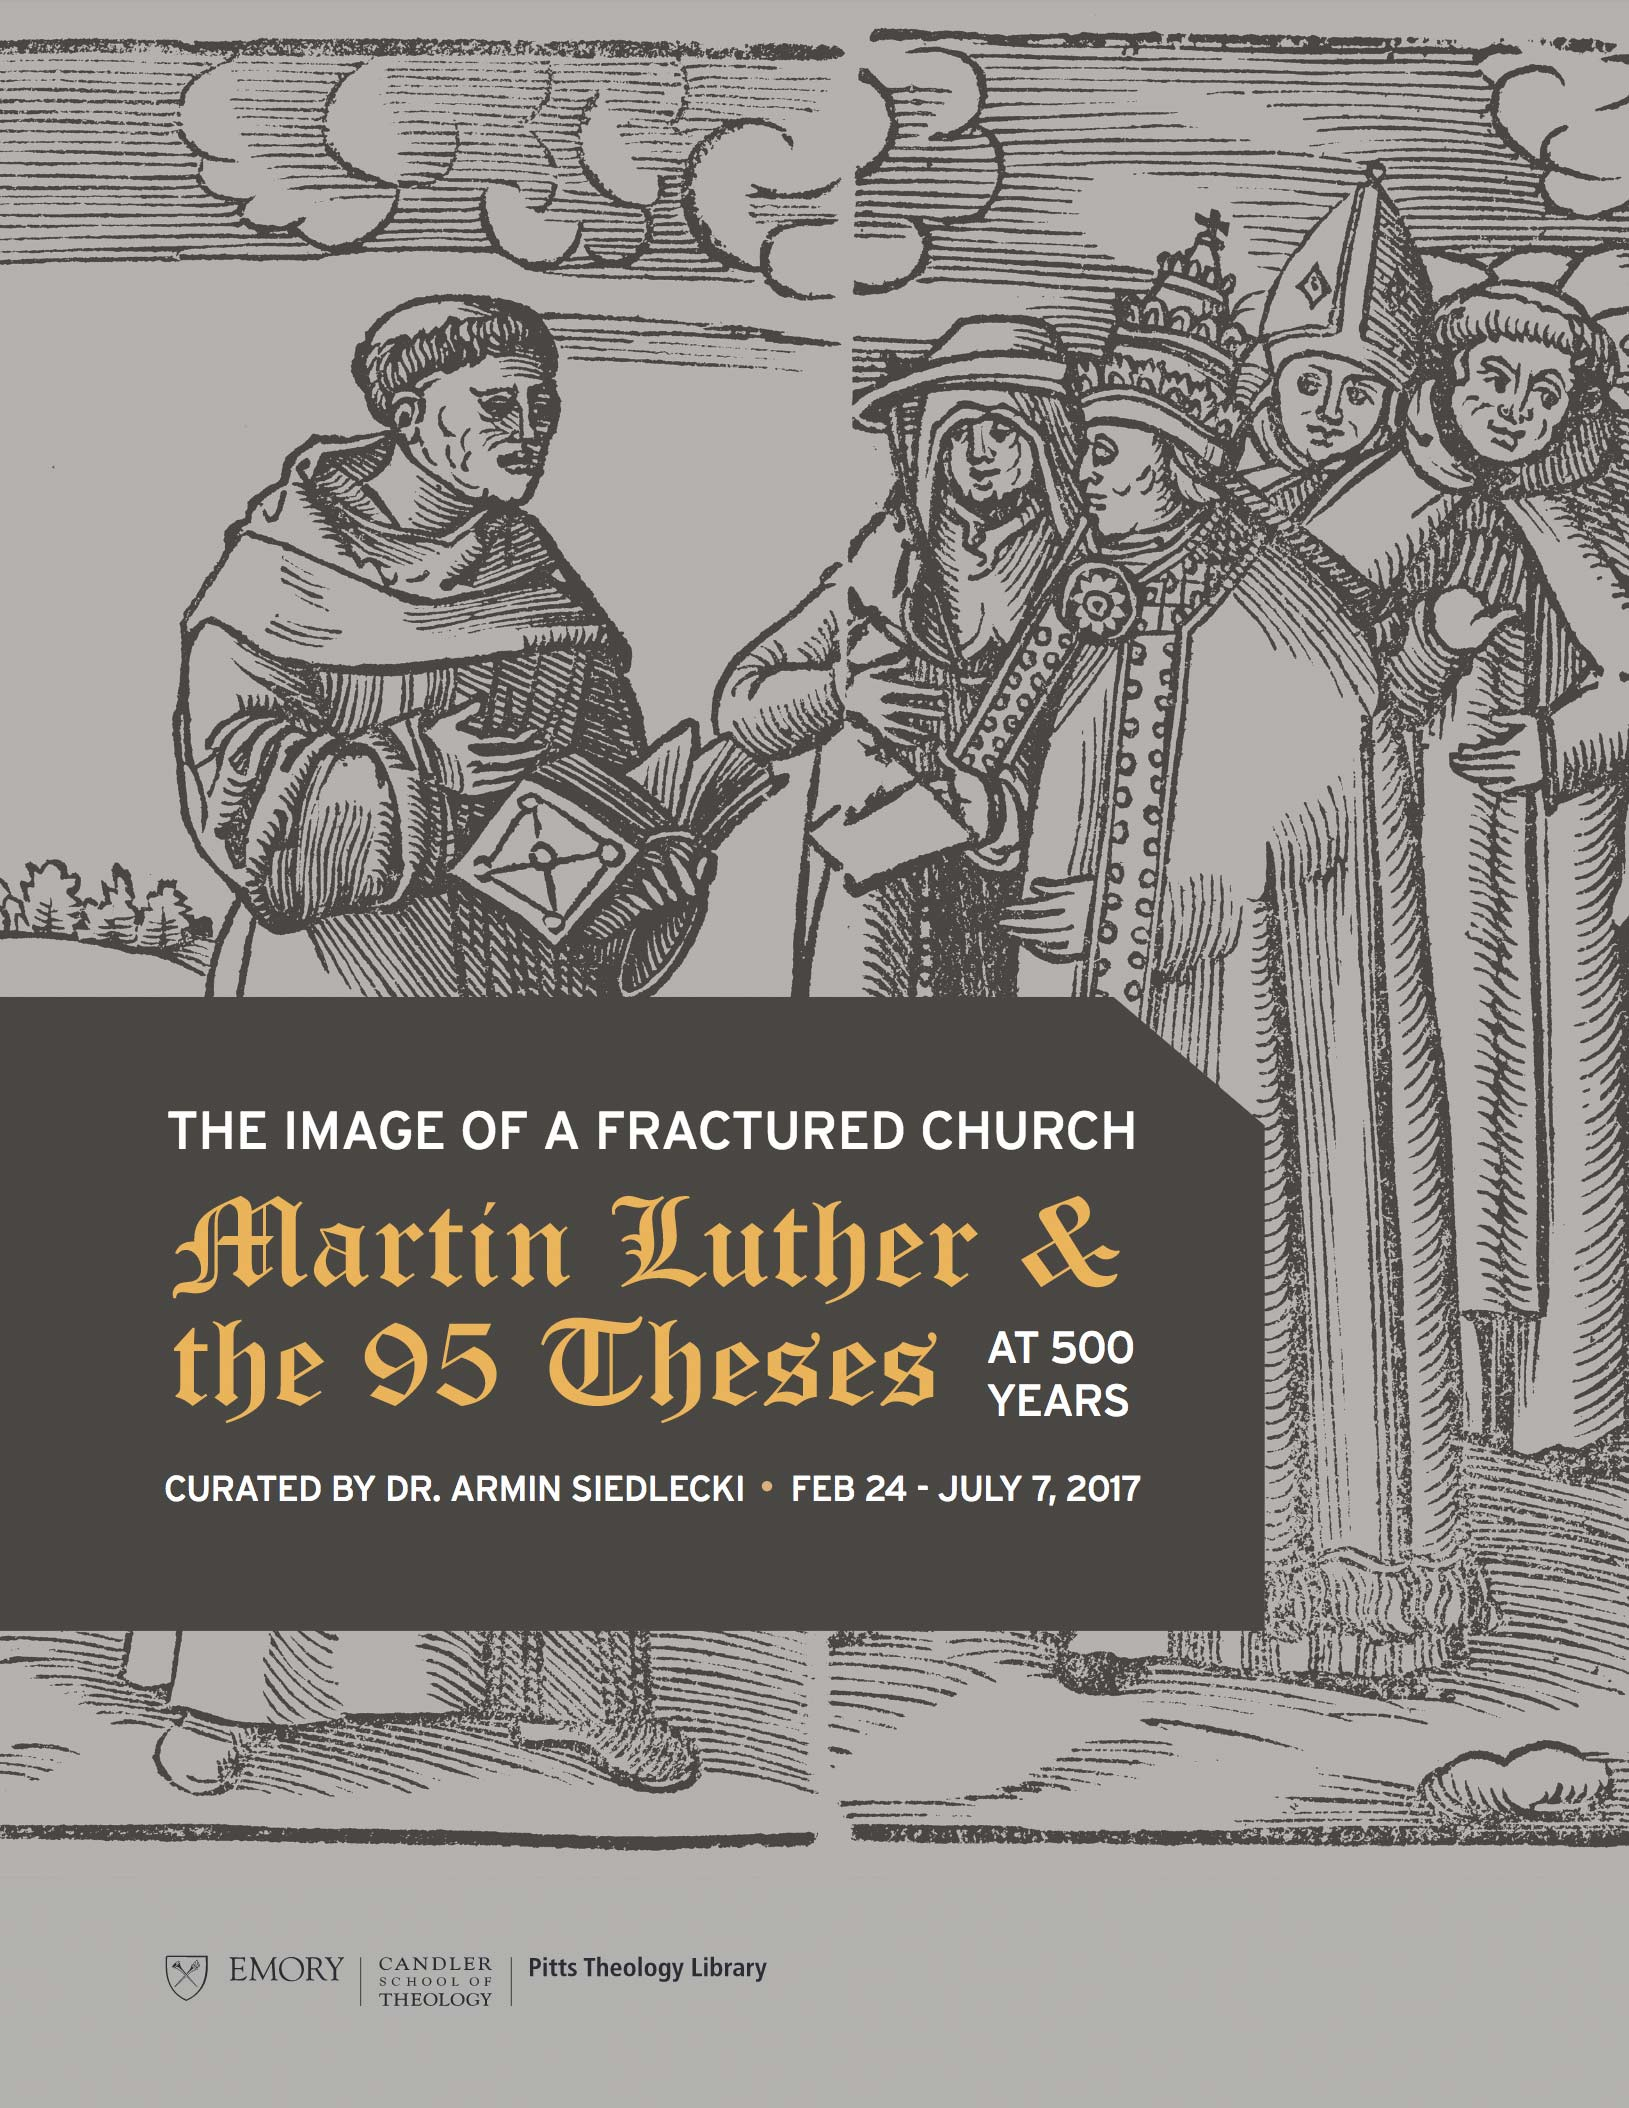 The Image of a Fractured Church: Martin Luther and the 95 Theses at 500 Years